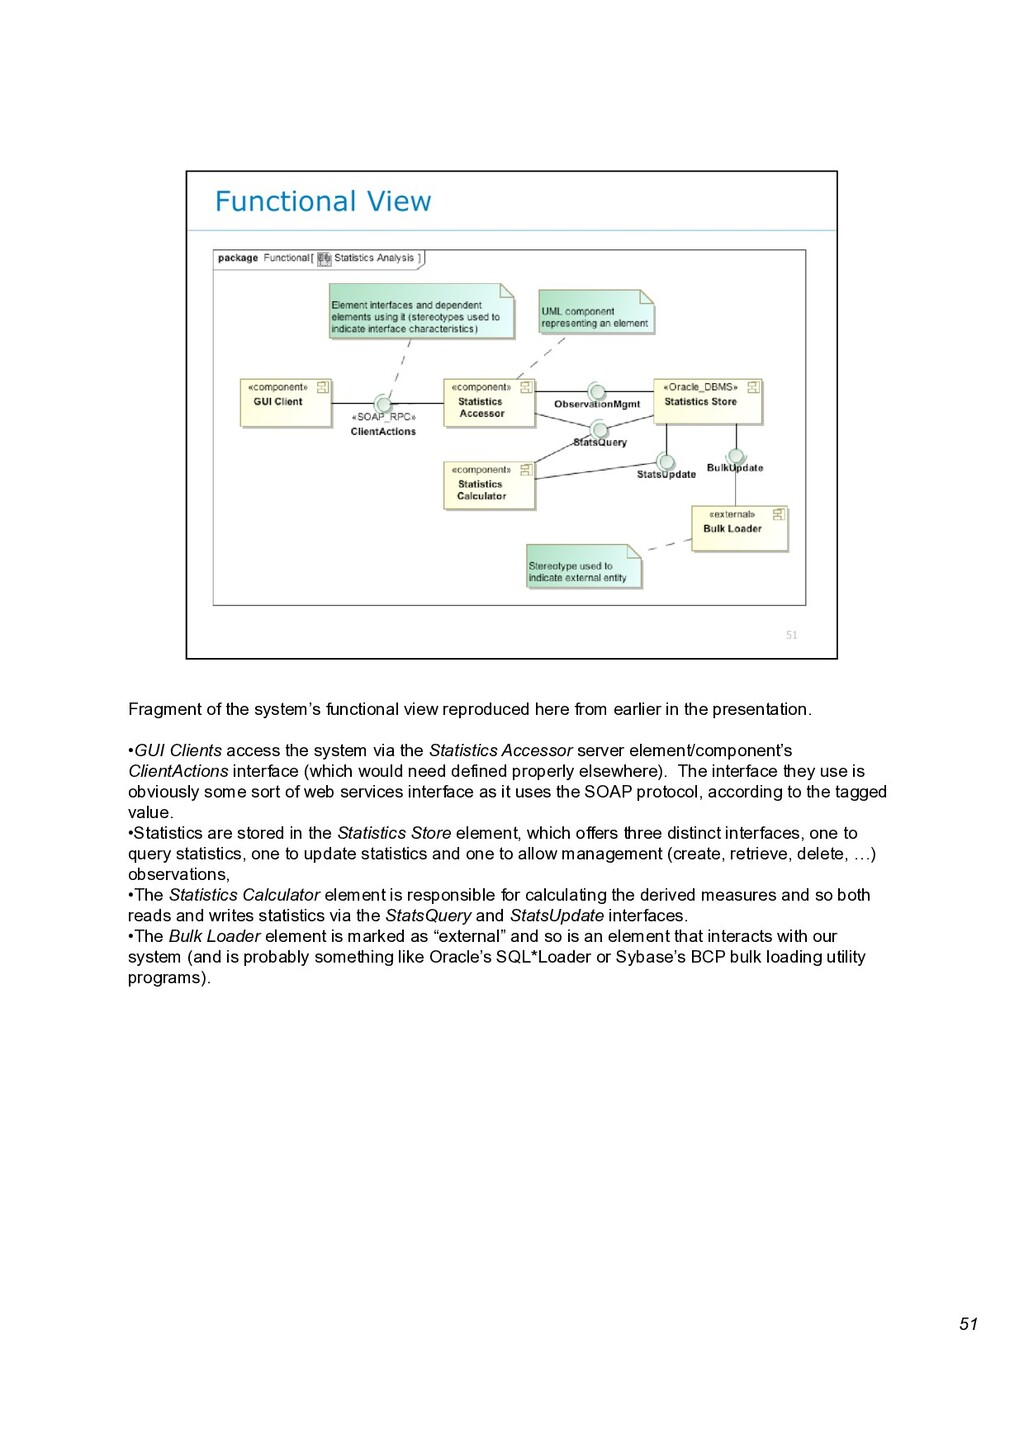 51 Fragment of the system's functional view rep...